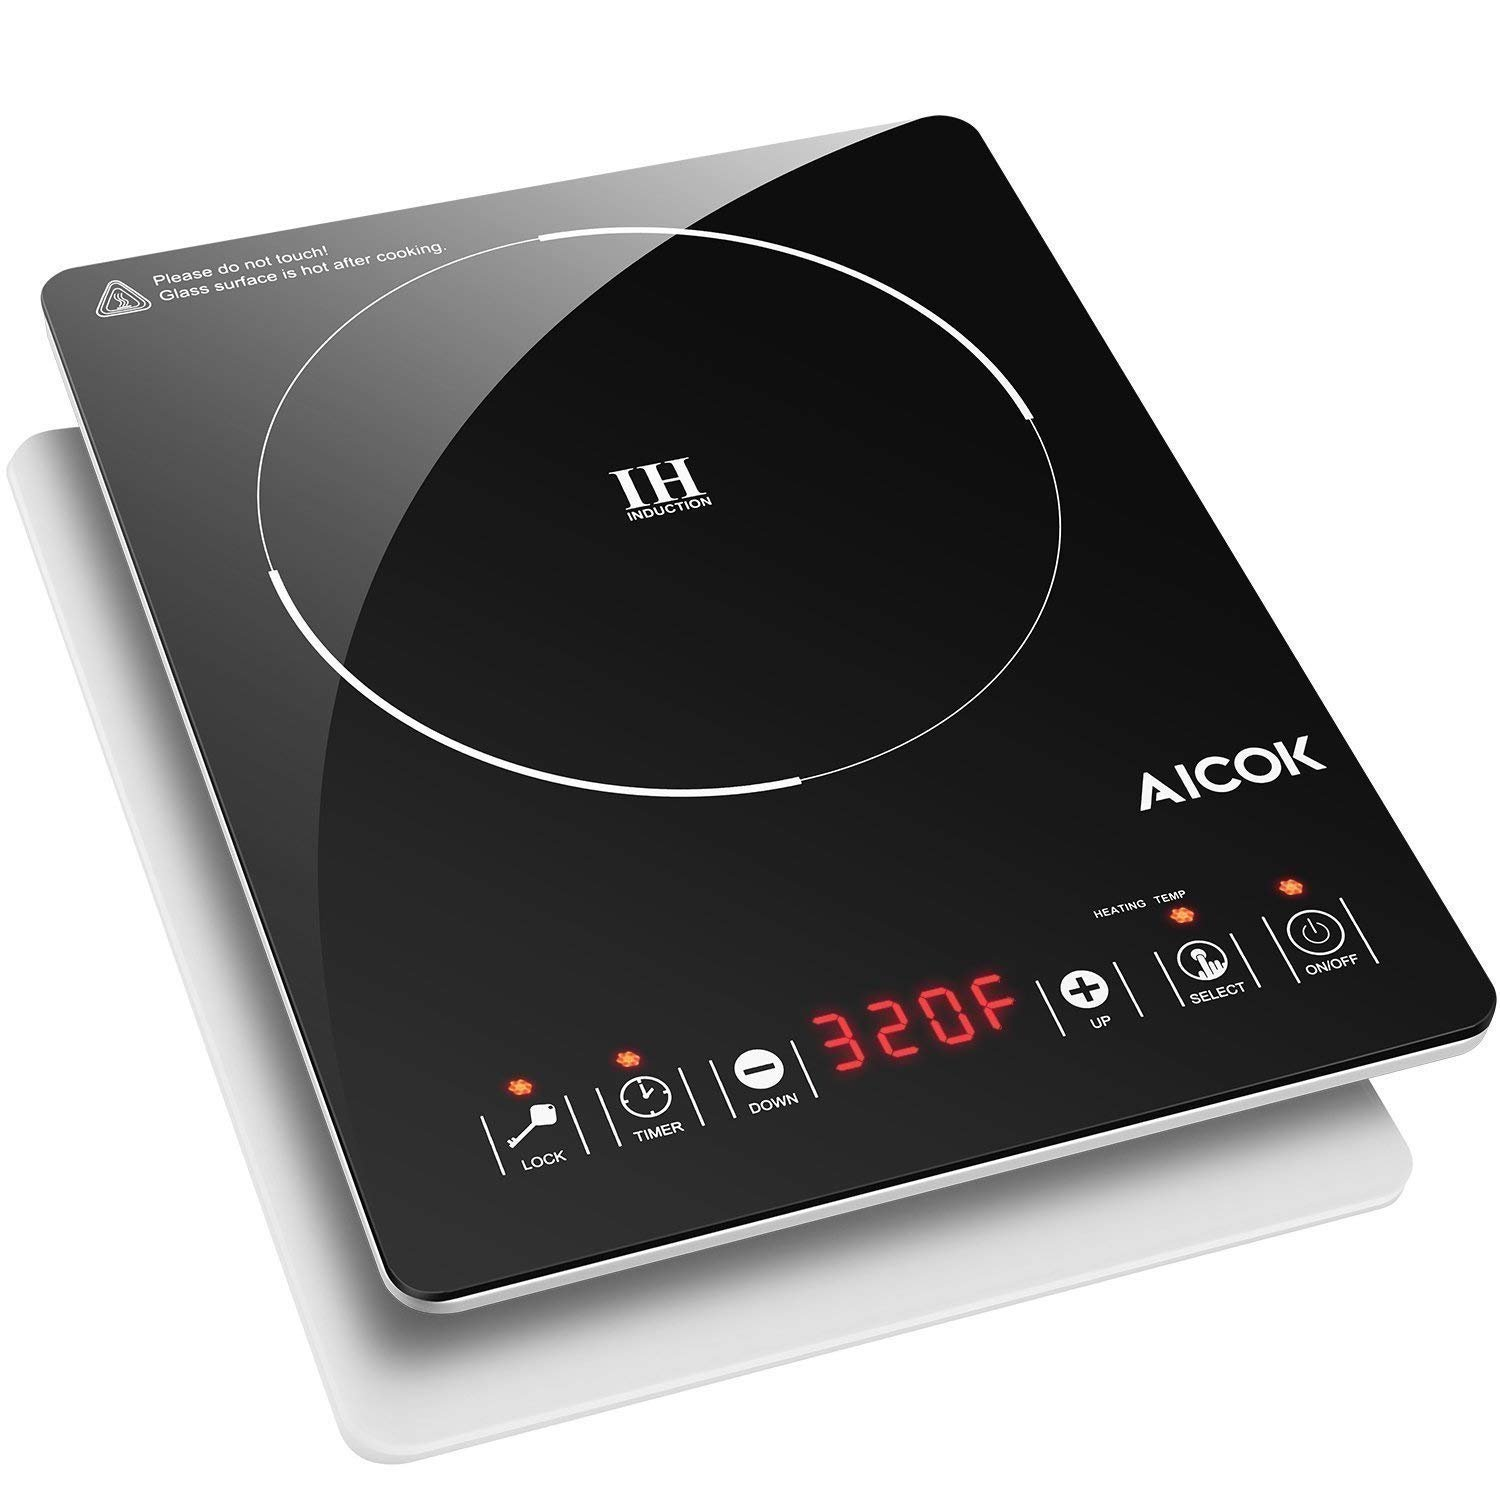 Aicok Portable Induction Cooktop, Countertop Burner with Timer, 15 Power Levels, 15 Preset Temperatures, Child Safety Lock, Ultra-Thin Design